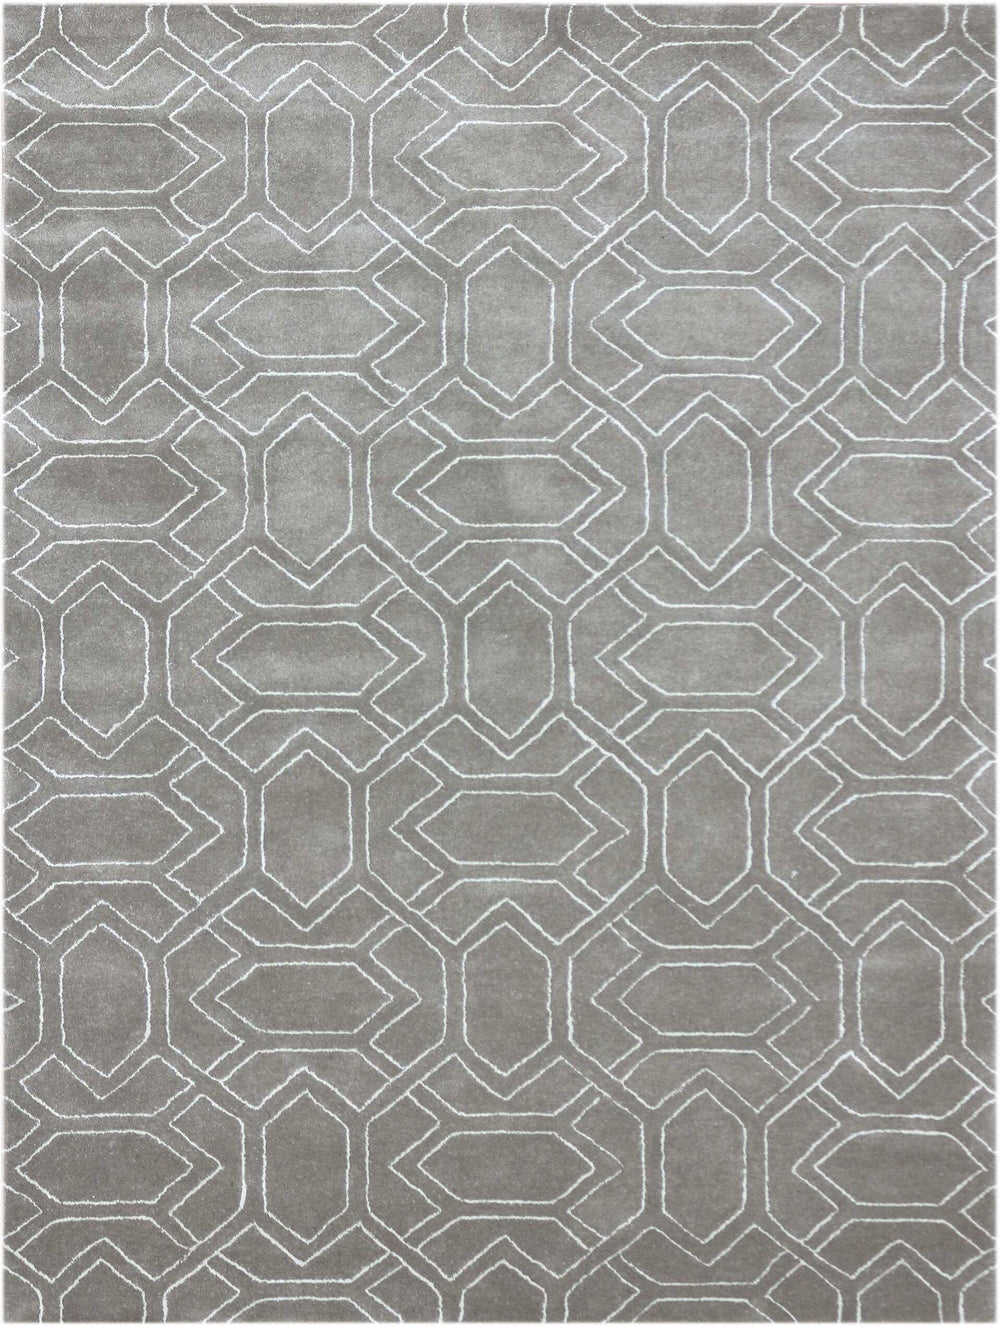 Amer Rugs City CIT-29 Area Rug